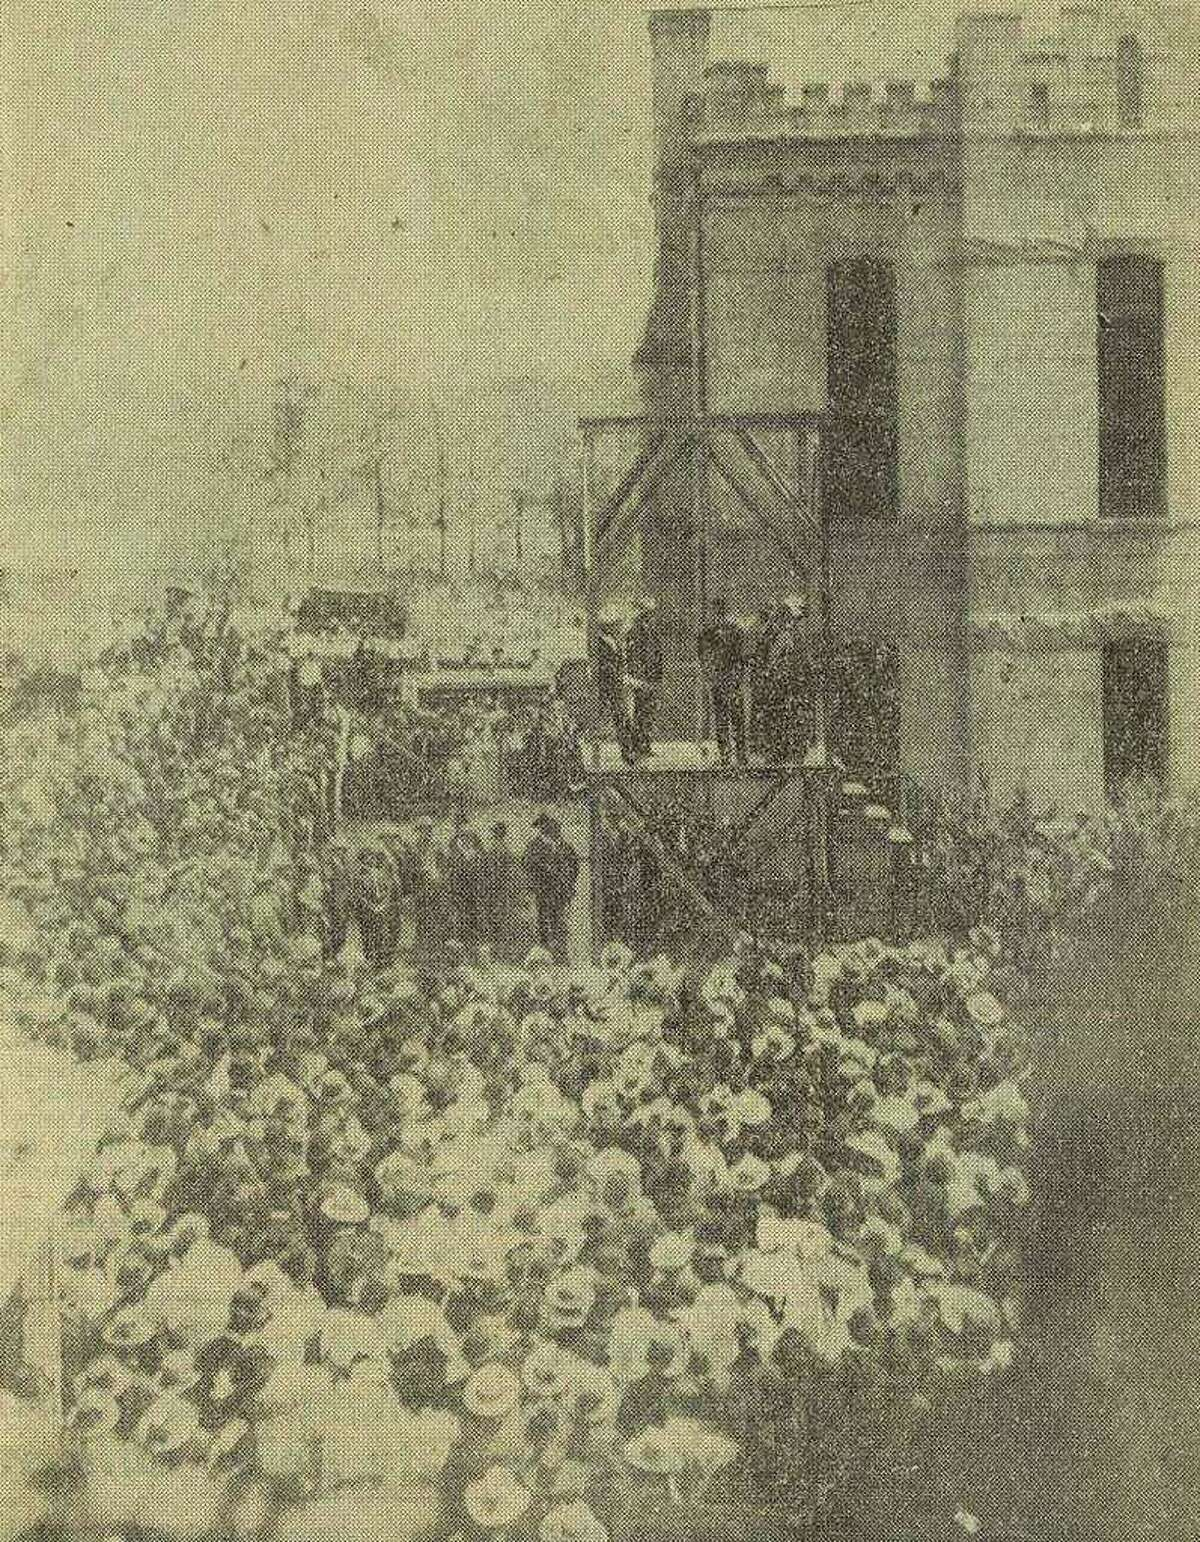 Spectators came from miles around to witness Jefferson County's last public hanging in 1903, when Willie Green was executed in the old jail yard at Pearl and Franklin streets. In 1923, the state began handling executions using an electric chair dubbed